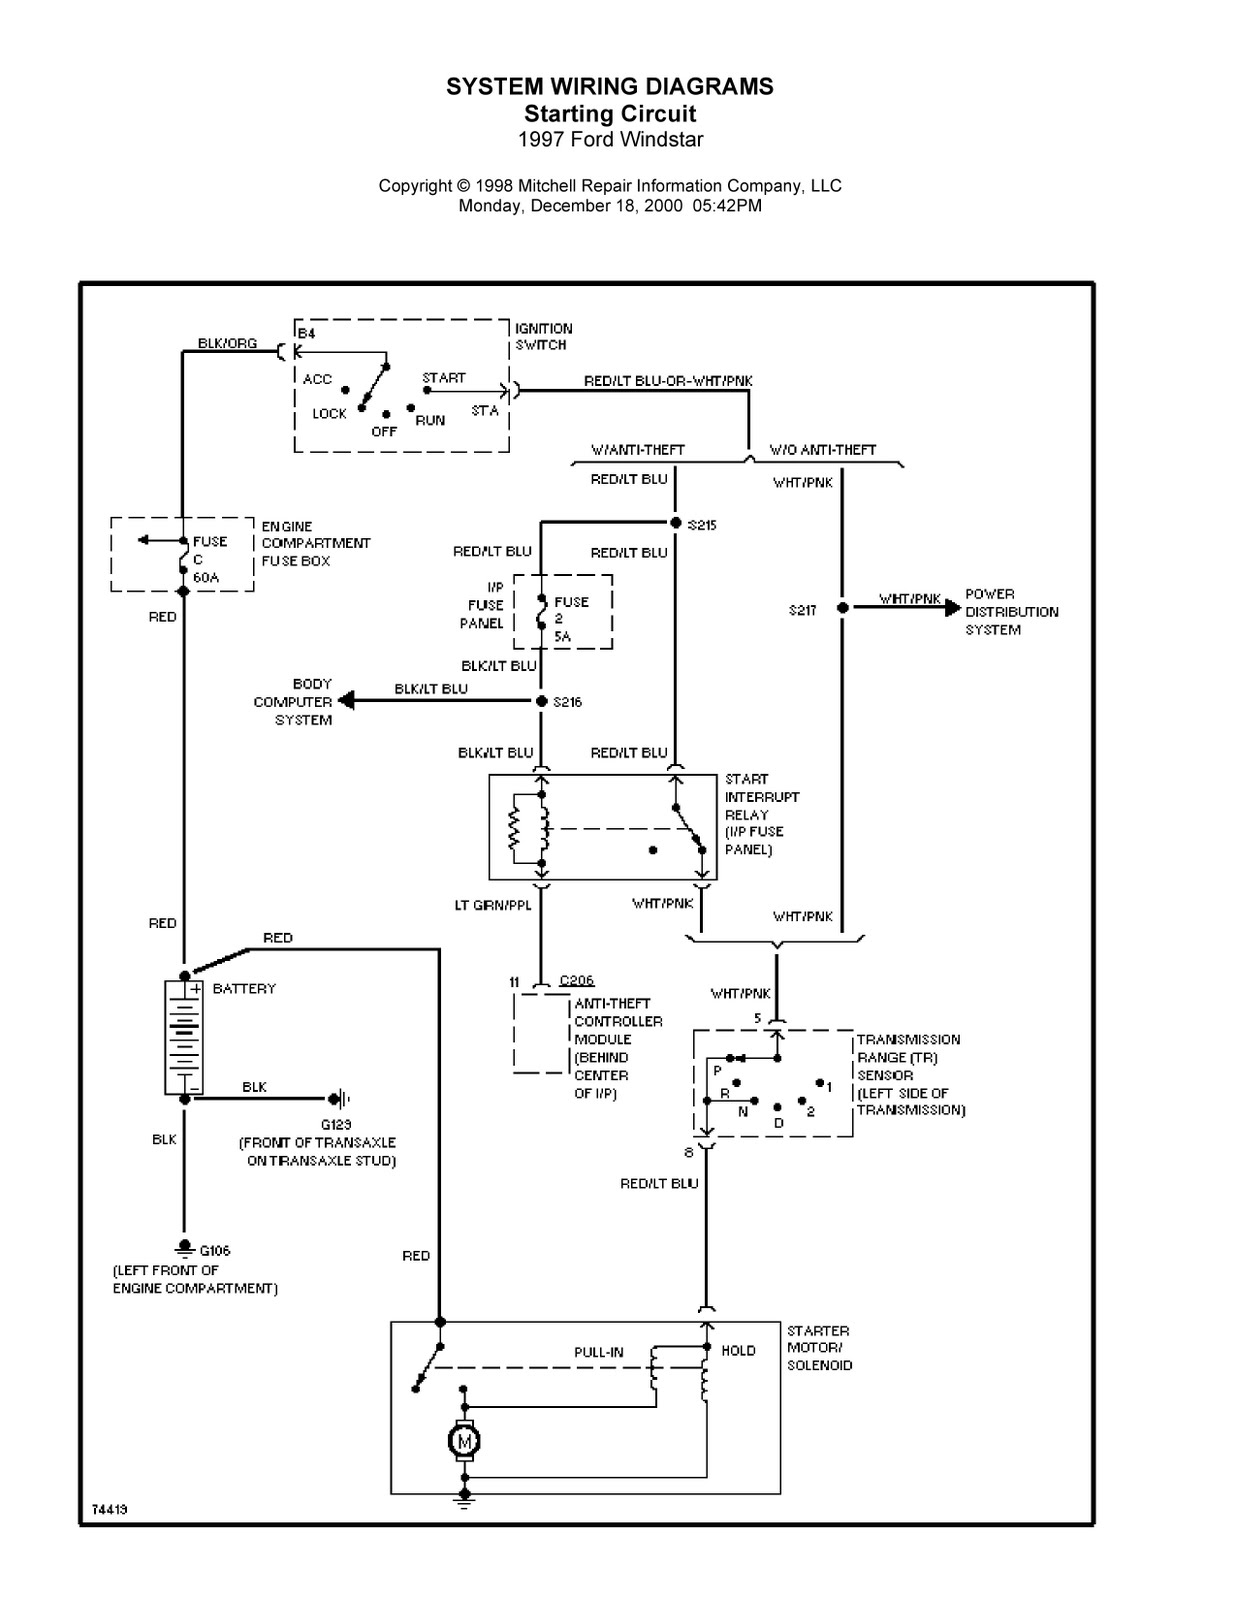 1996 windstar starter runs in accessory run and start positions on wiring diagram for 2001 ford windstar radio 2001 Ford Windstar Transmission Diagram 1994 Ford Bronco Radio Wiring Diagram